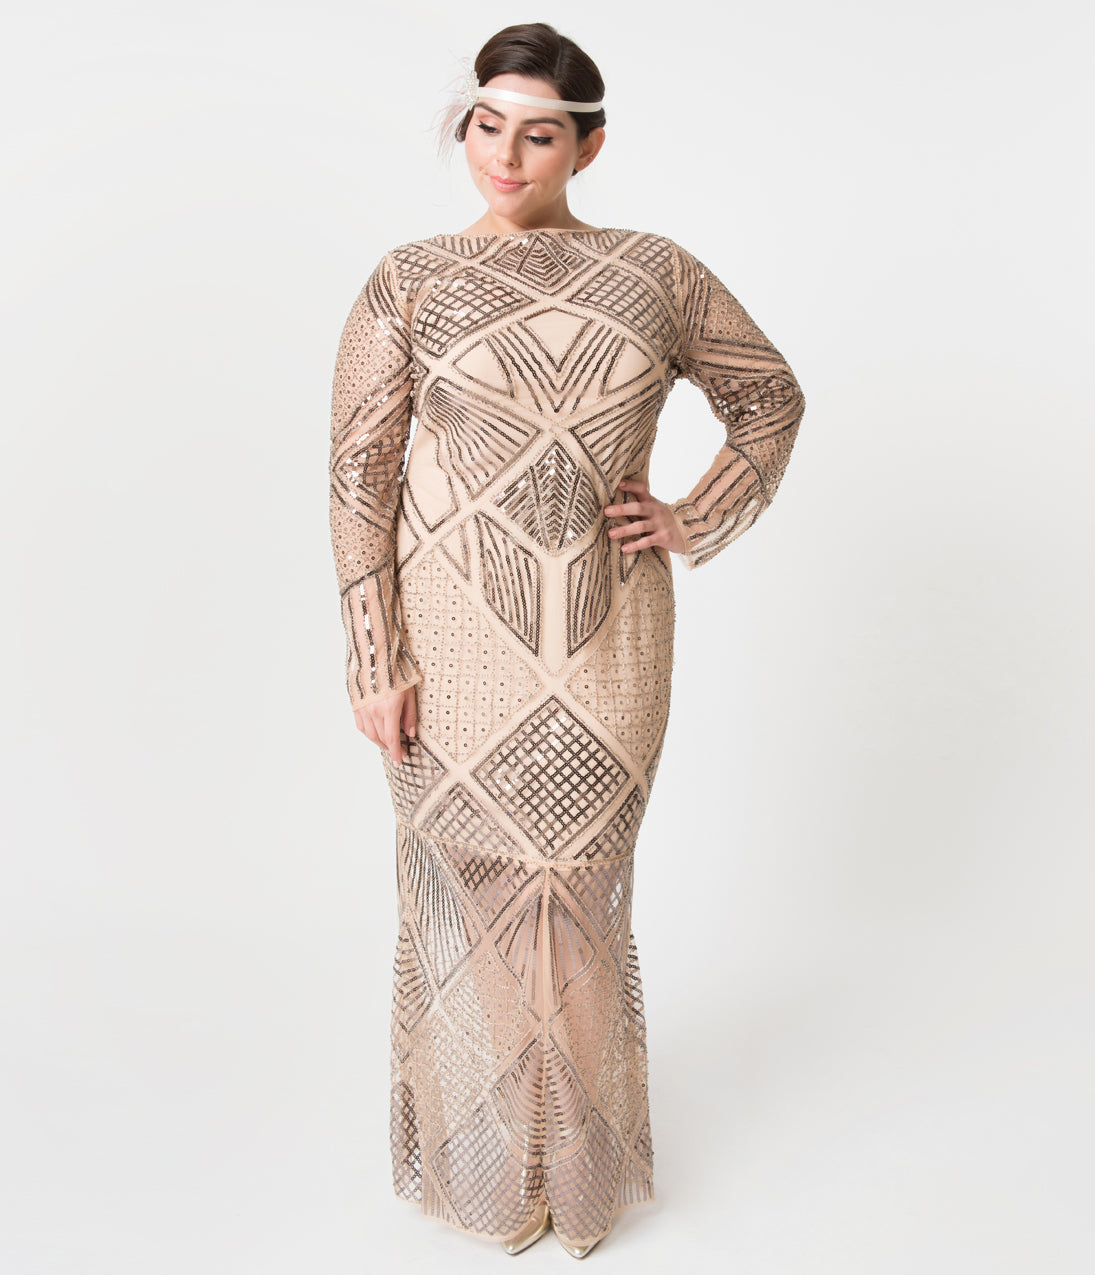 Vintage Evening Dresses and Formal Evening Gowns Unique Vintage Plus Size Blush Rose Sleeved Beaded Régine Long Flapper Dress $148.00 AT vintagedancer.com